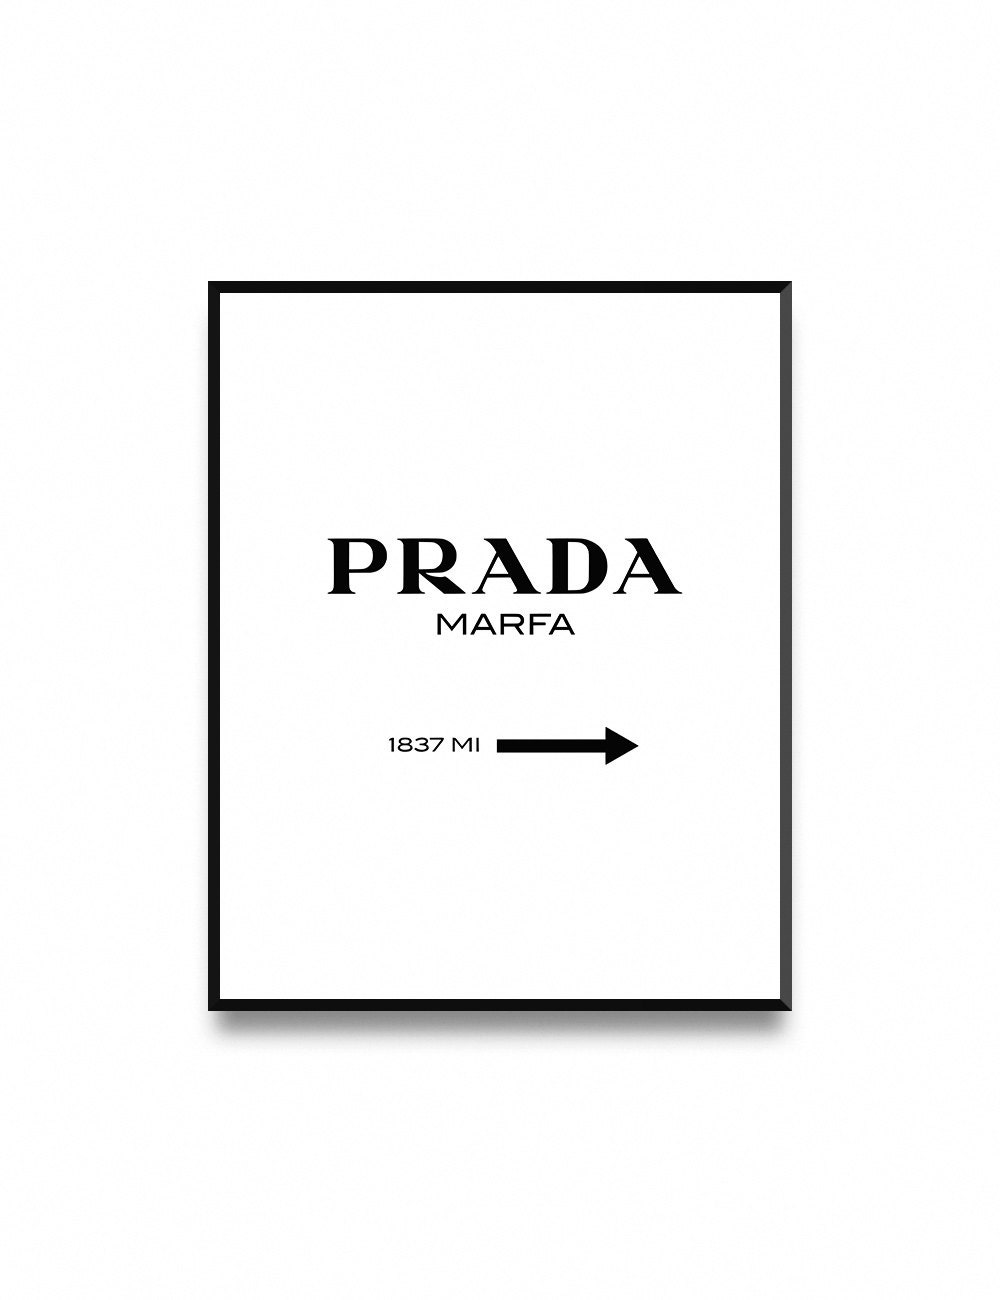 prada marfa prada print prada marfa sign prada poster girl fashion poster fashion print decor fashion poster decor printable art